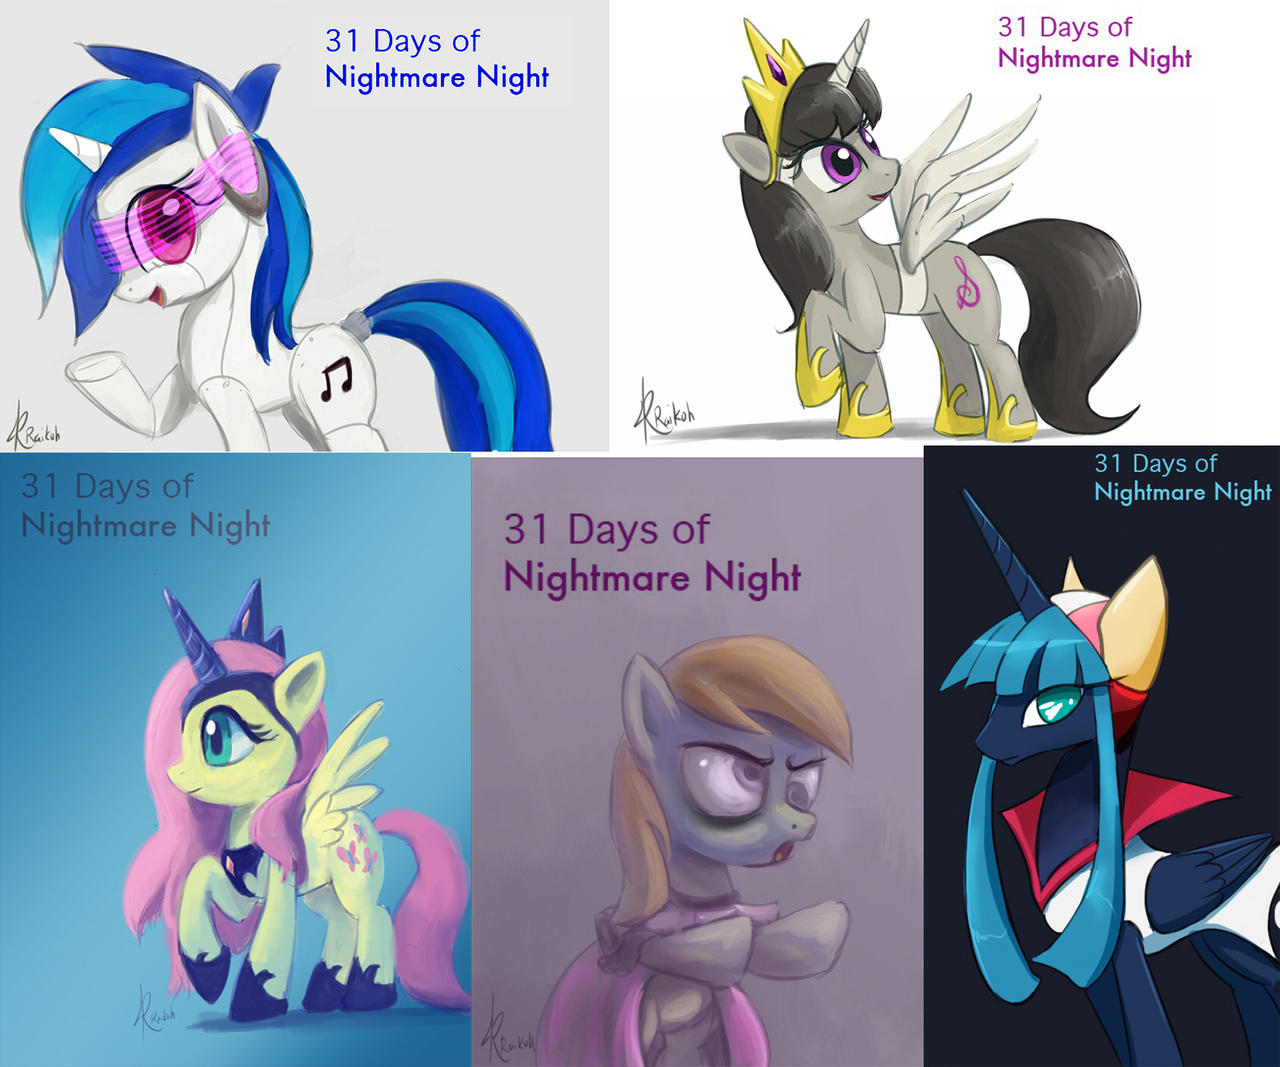 31 days of Nightmare Night set #2 by Raikoh-illust